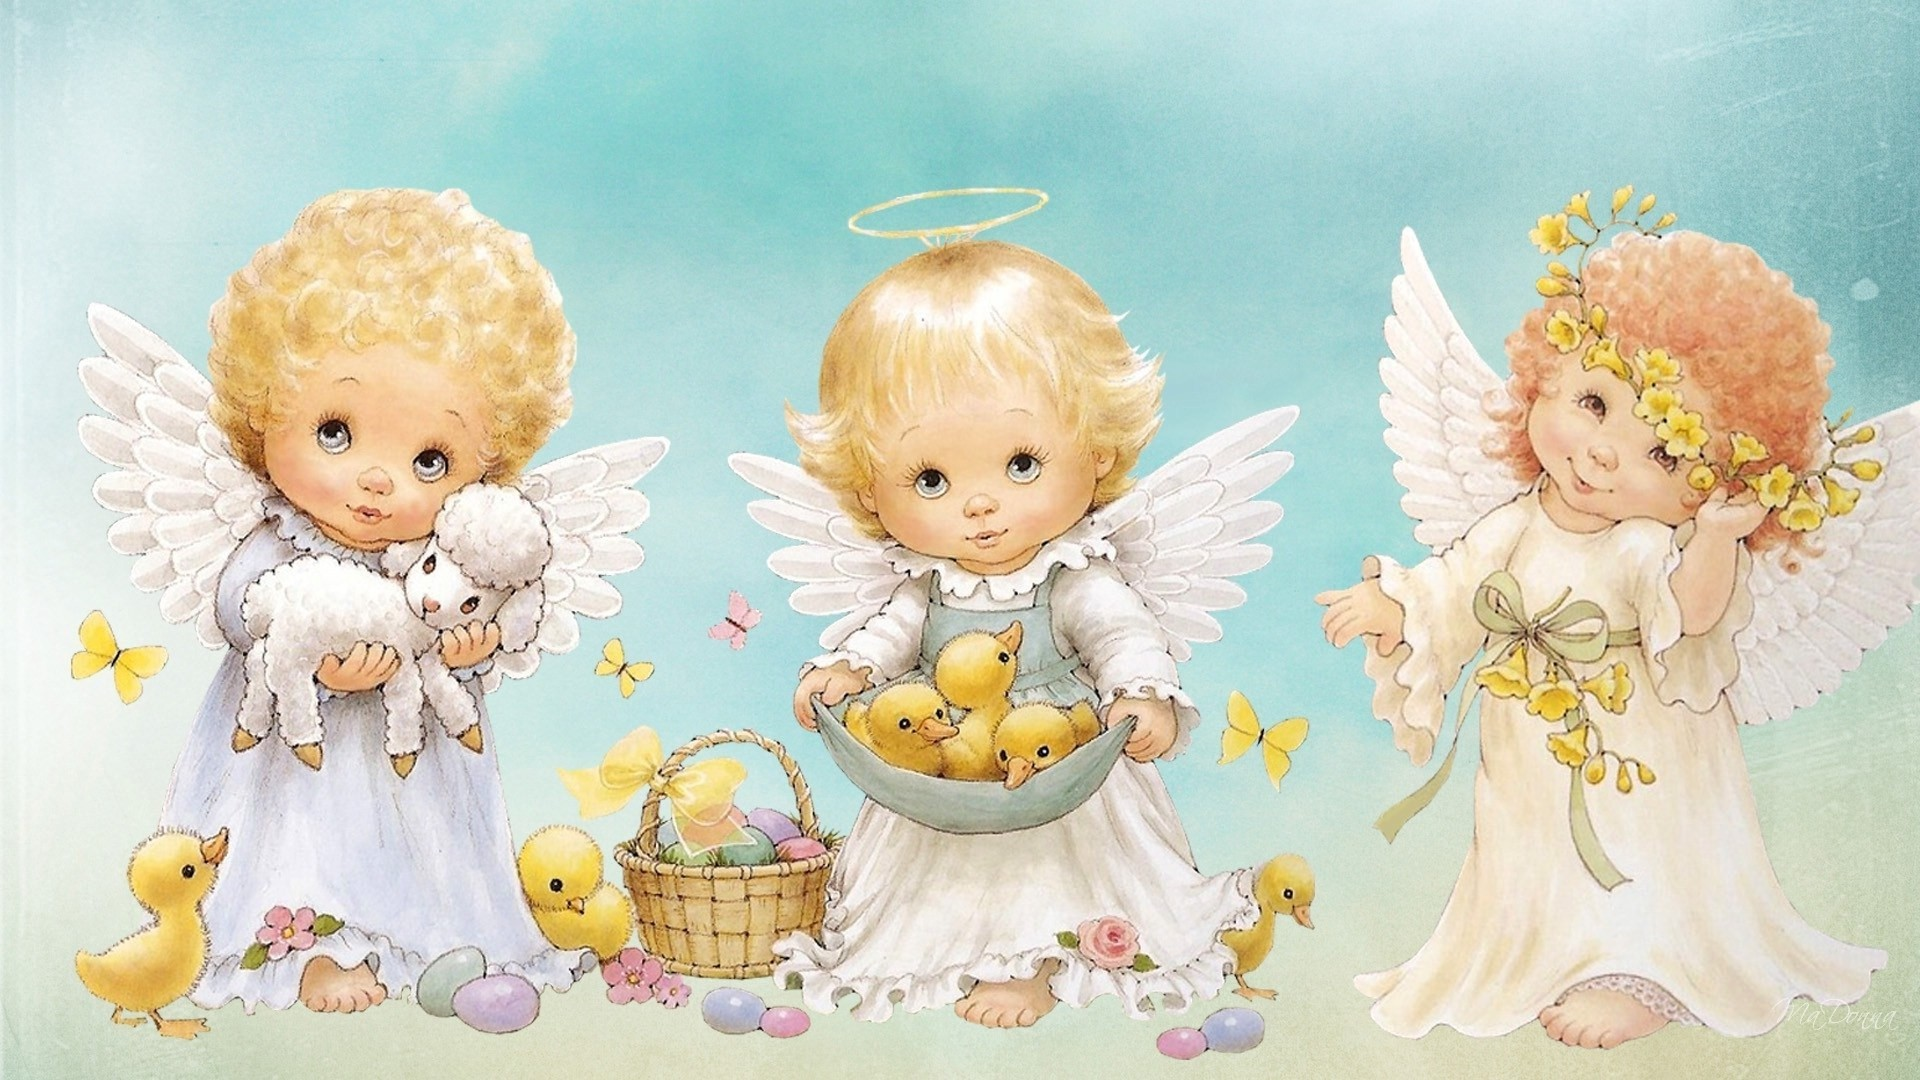 Res: 1920x1080, Wallpaper Hd Of Angel Babies Cute Photo With Pics Mobile